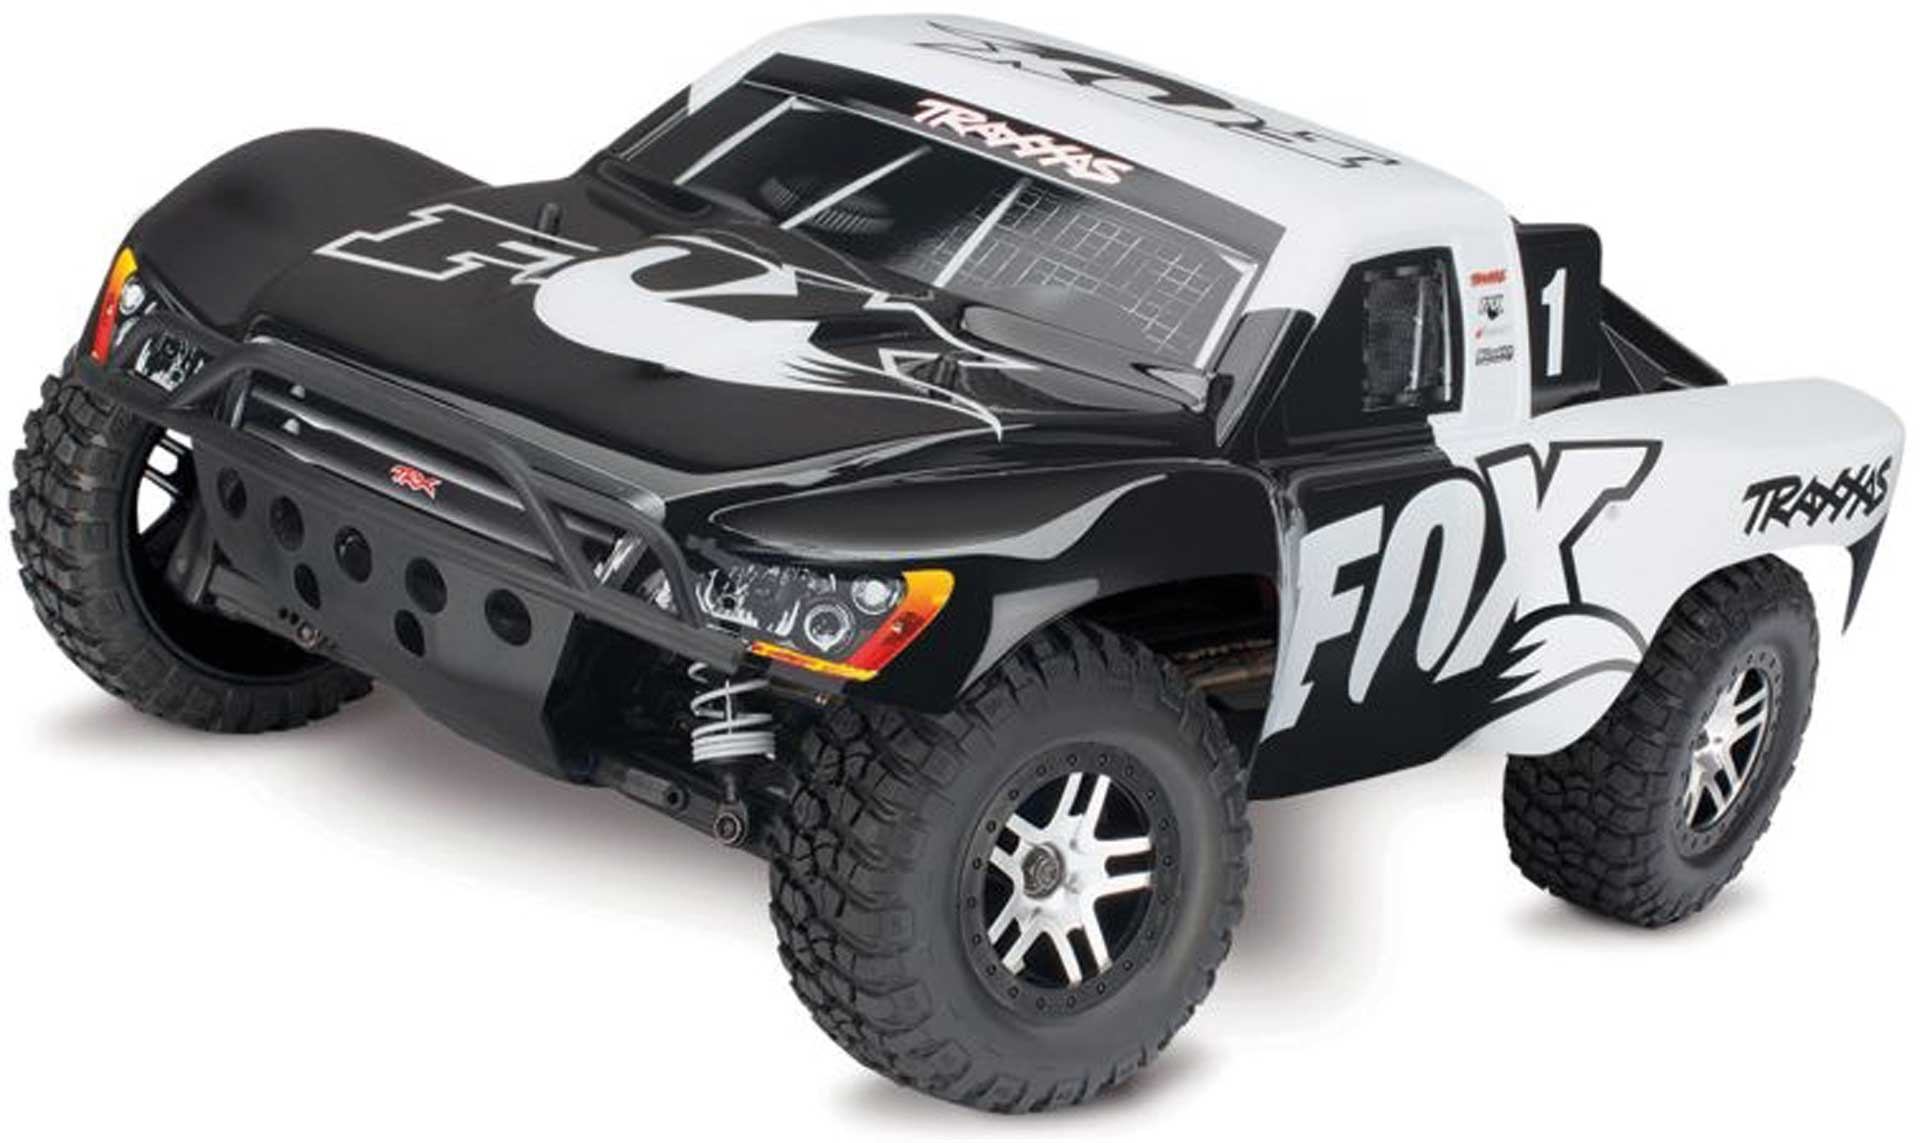 Traxxas SLASH 4X4 VXL FOX RTR OHNE AKKU/LADER 1/1 0 4WD SHORT-COURSE-RACE-TRUCK BRUSHLESS